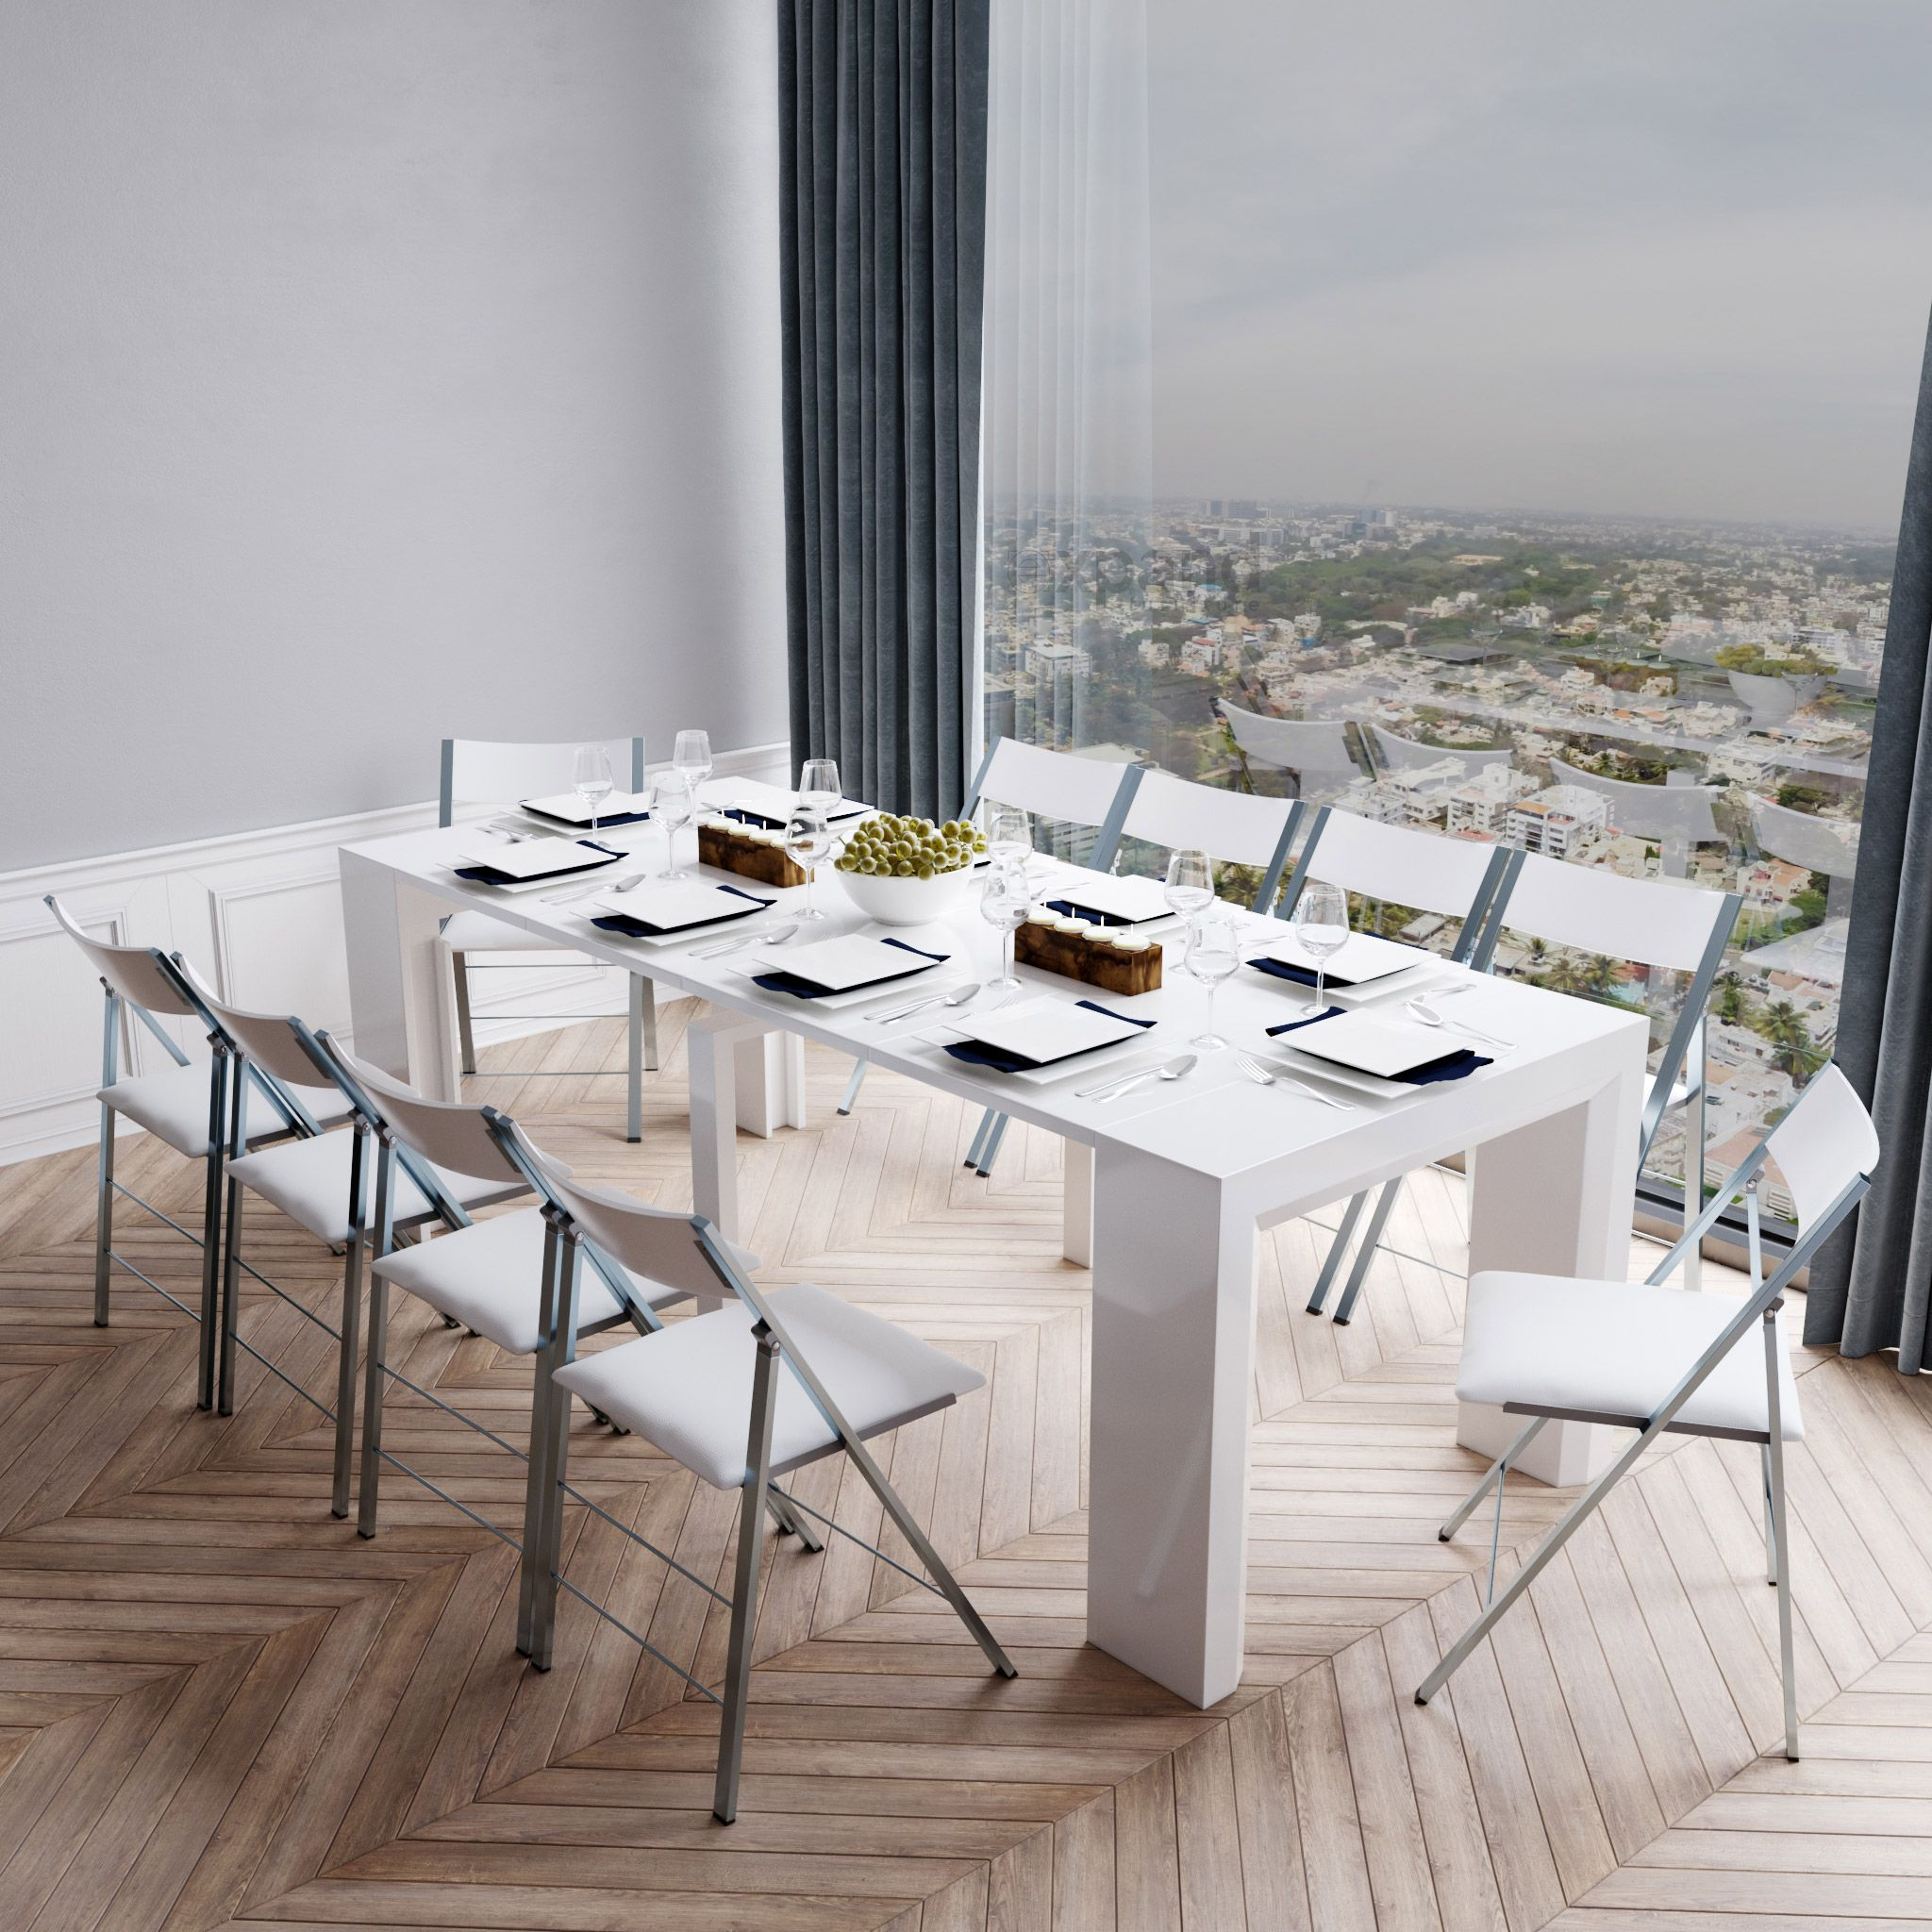 Junior Giant Extending Table Set with Chairs   Expand Furniture ...